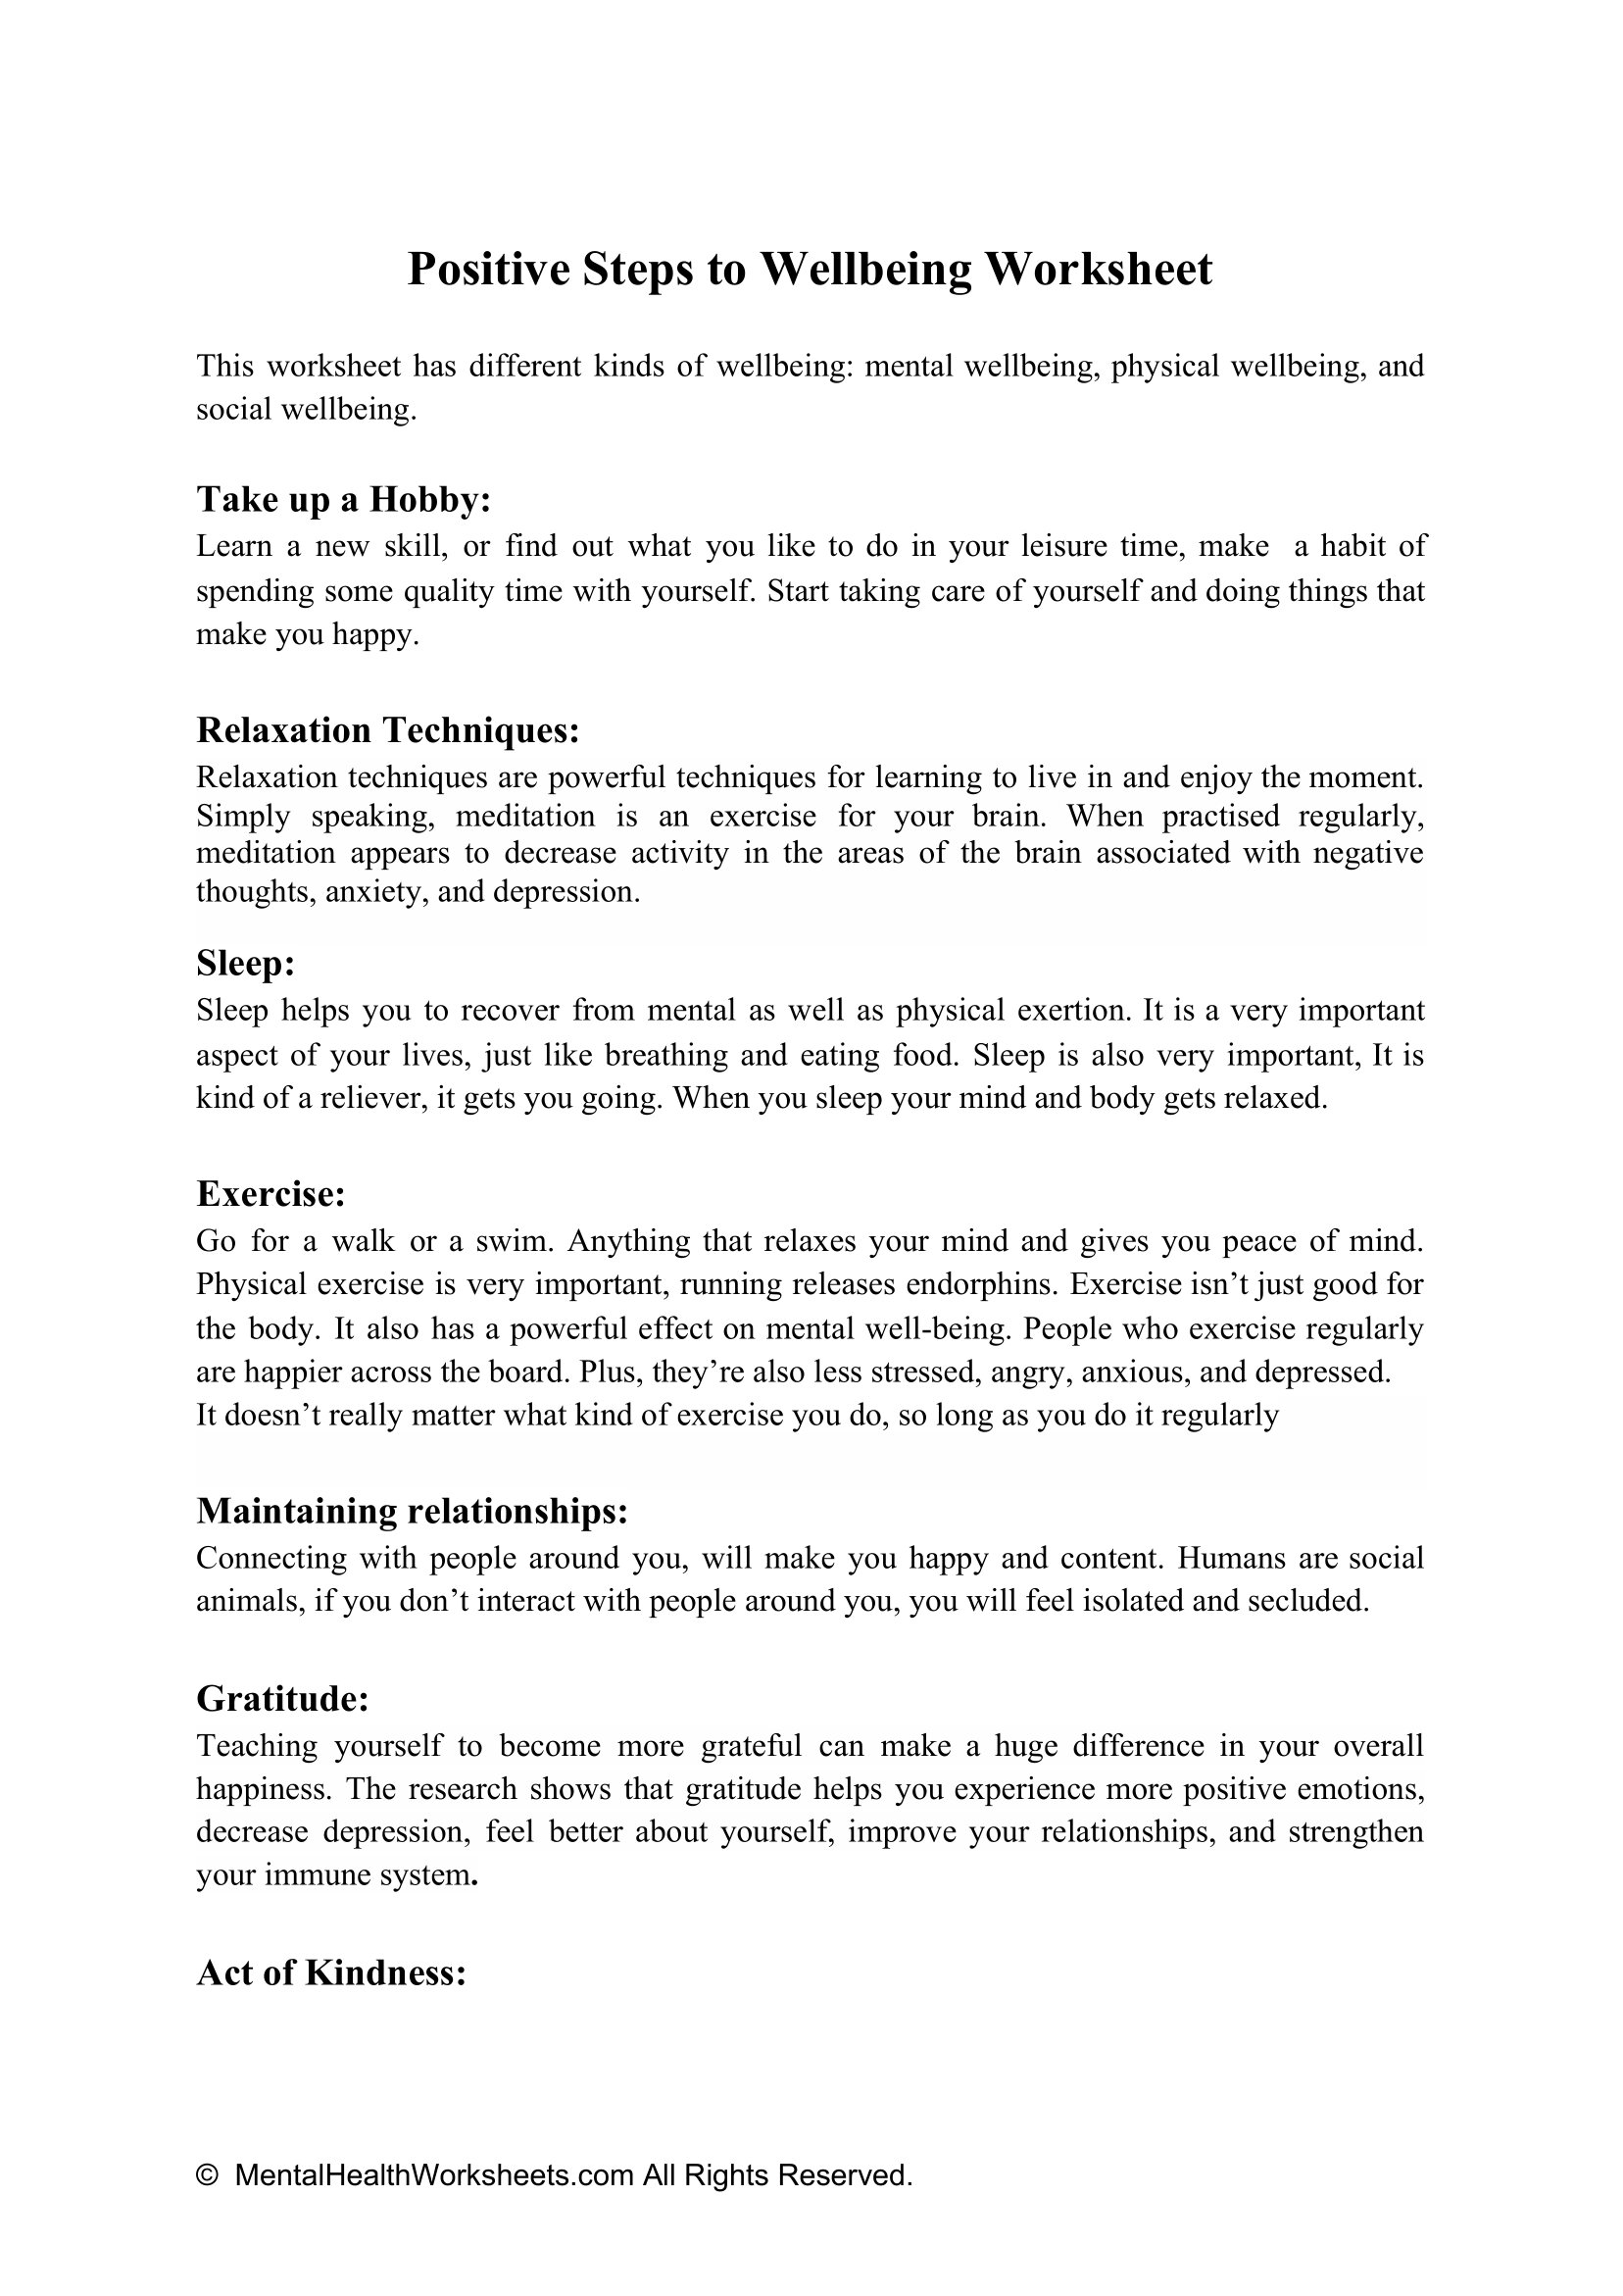 Positive Steps To Wellbeing Worksheet